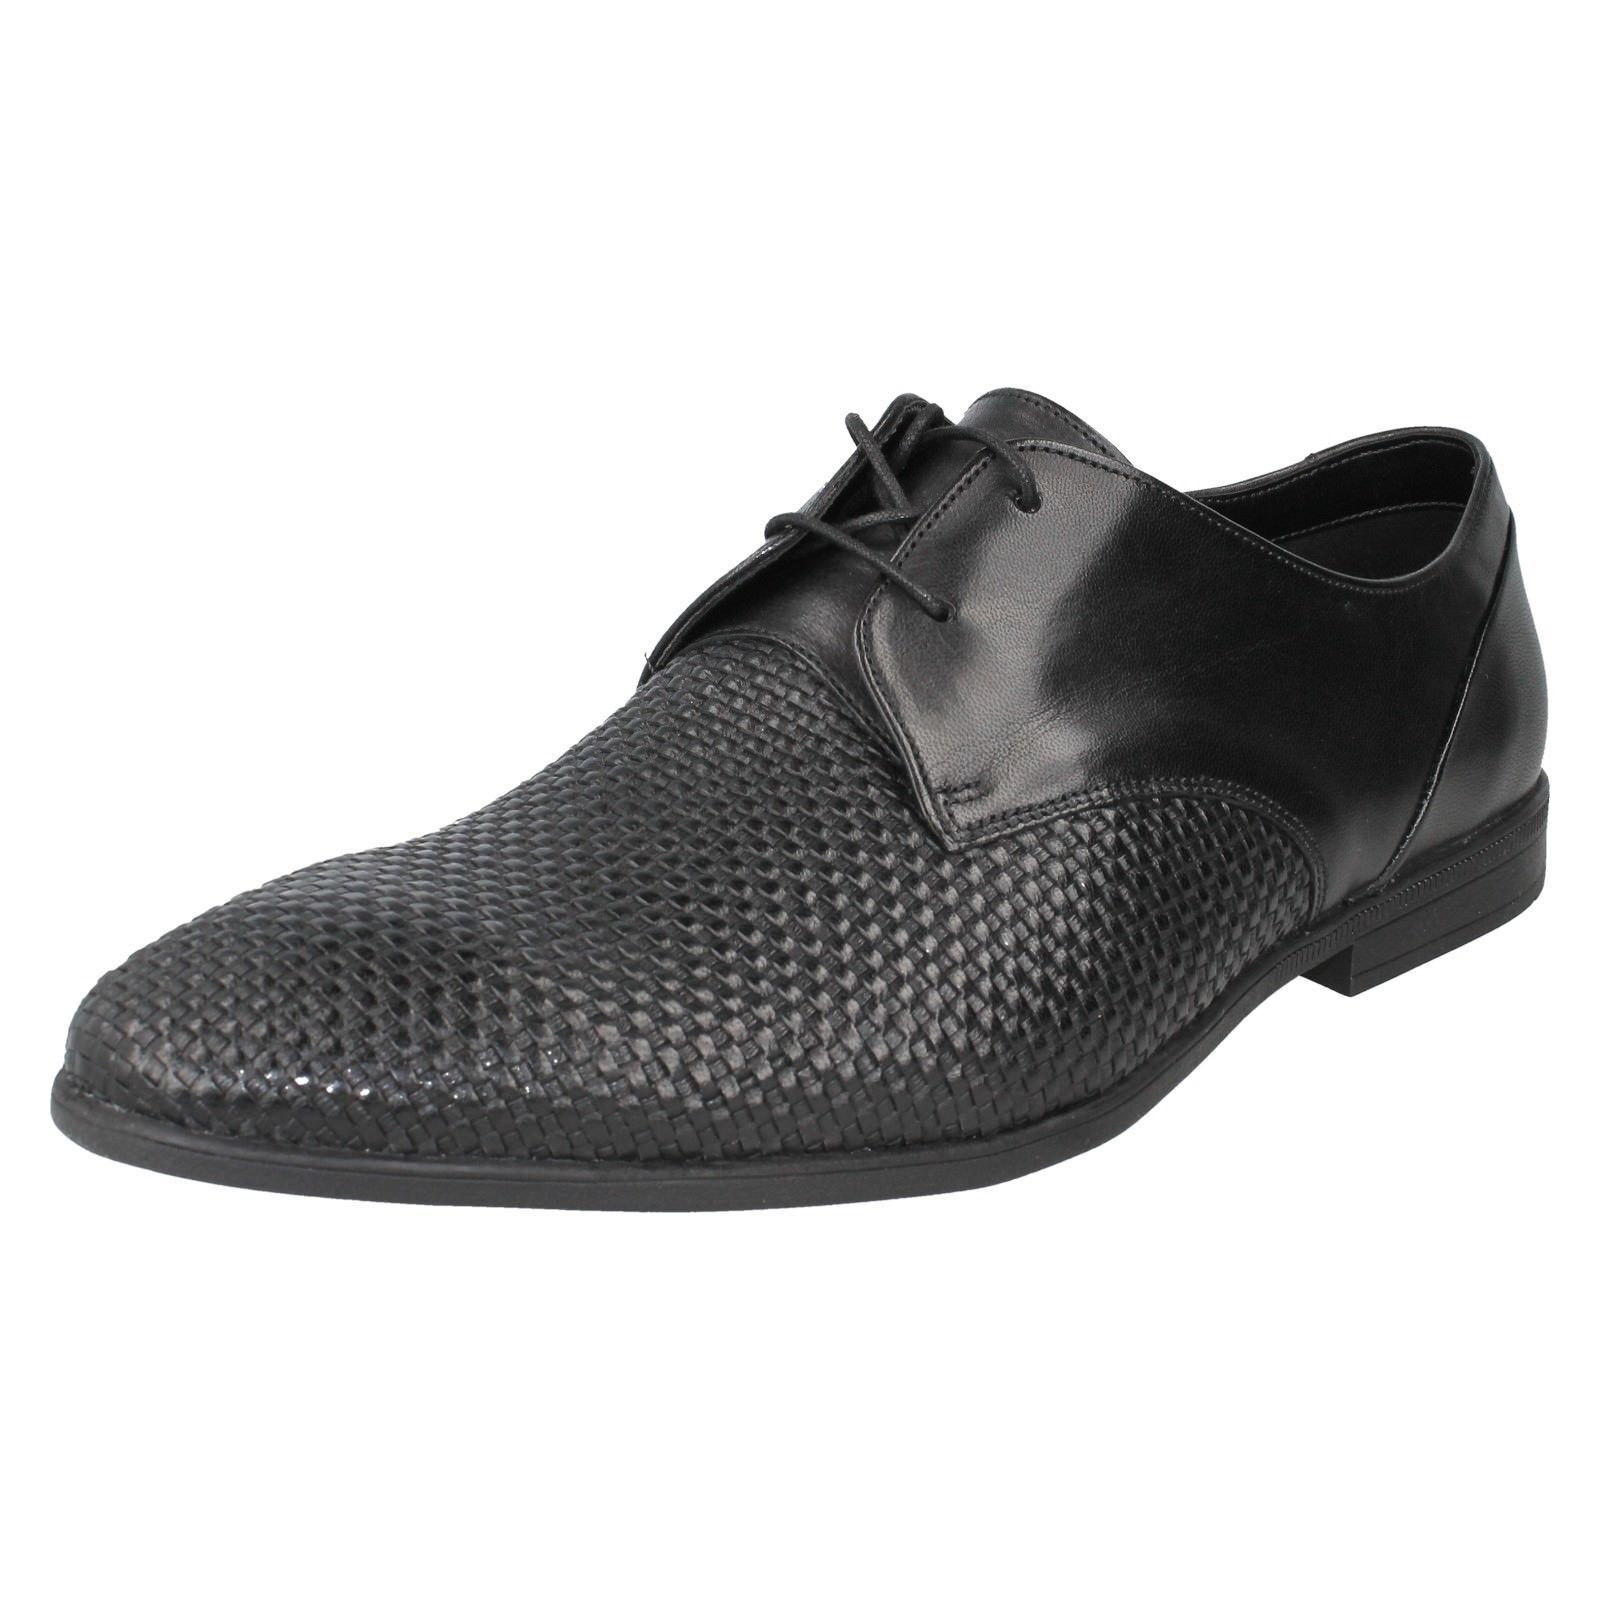 Uomo Schuhes Bampton Weave Lace Up Schuhes Uomo G Fit Retail Price bf91a8